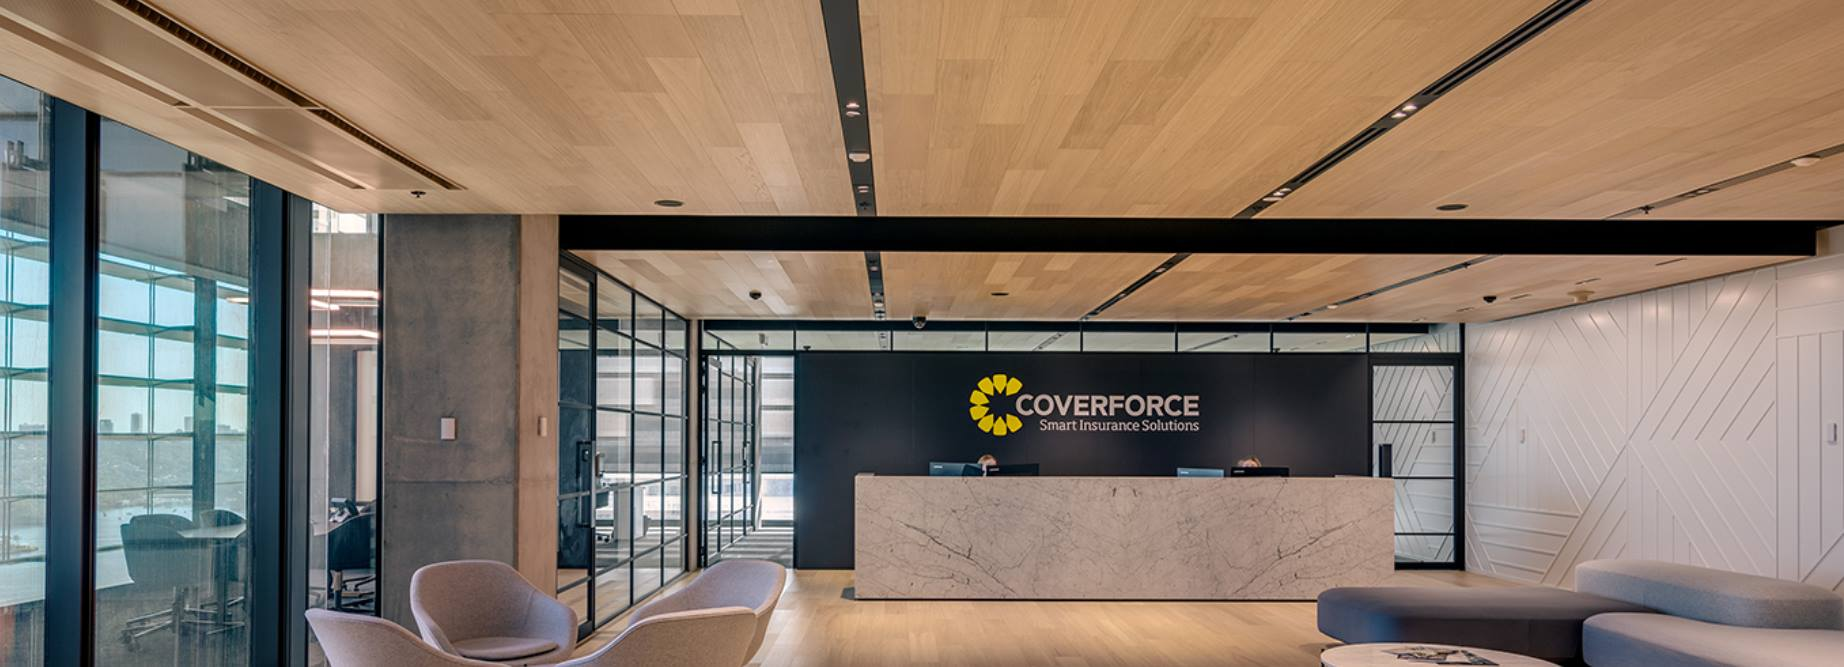 Coverforce-Barangaroo